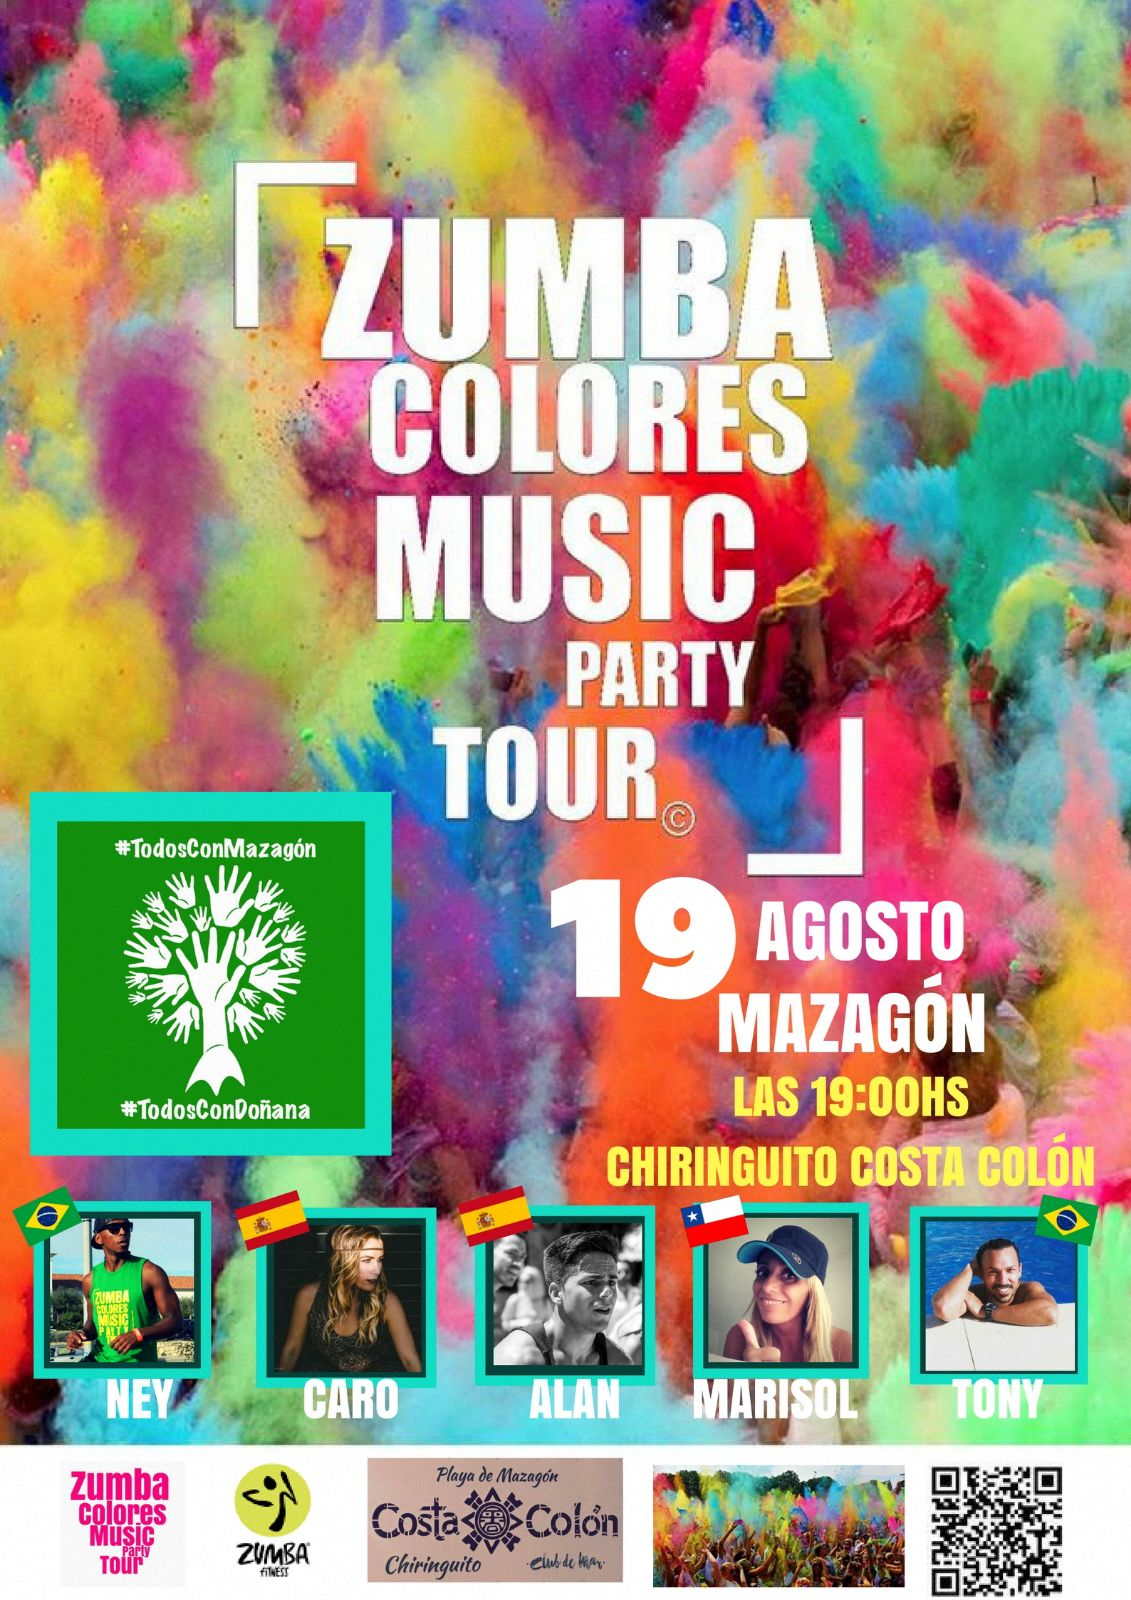 Cartel anunciador del I Zumba Colores Music Party Tour